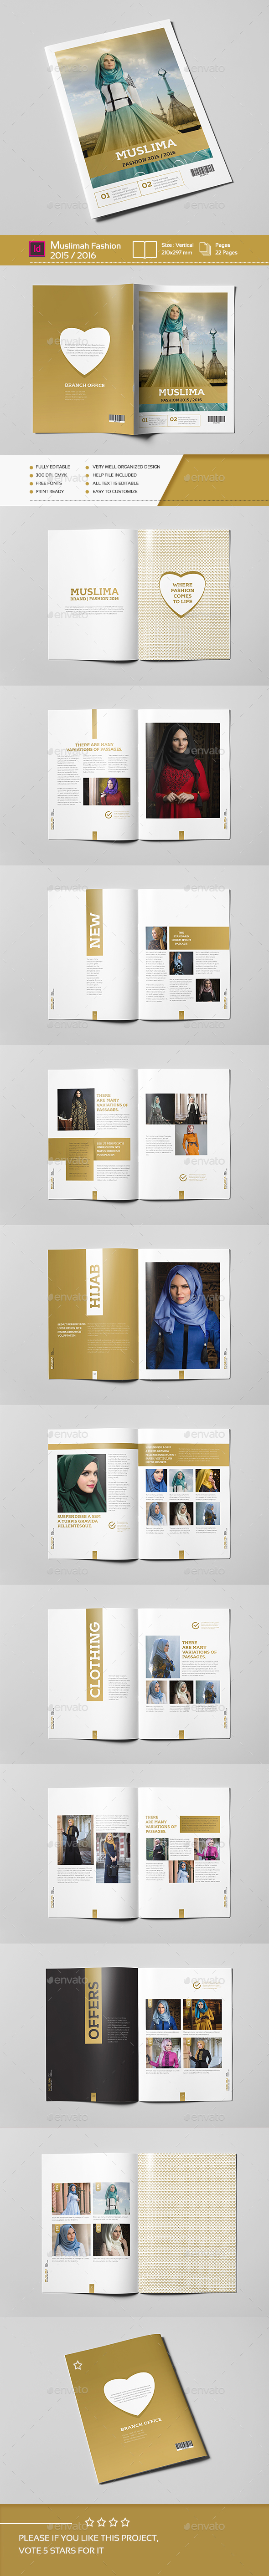 Muslimah Fashion 22 Pages A4 - Brochures Print Templates